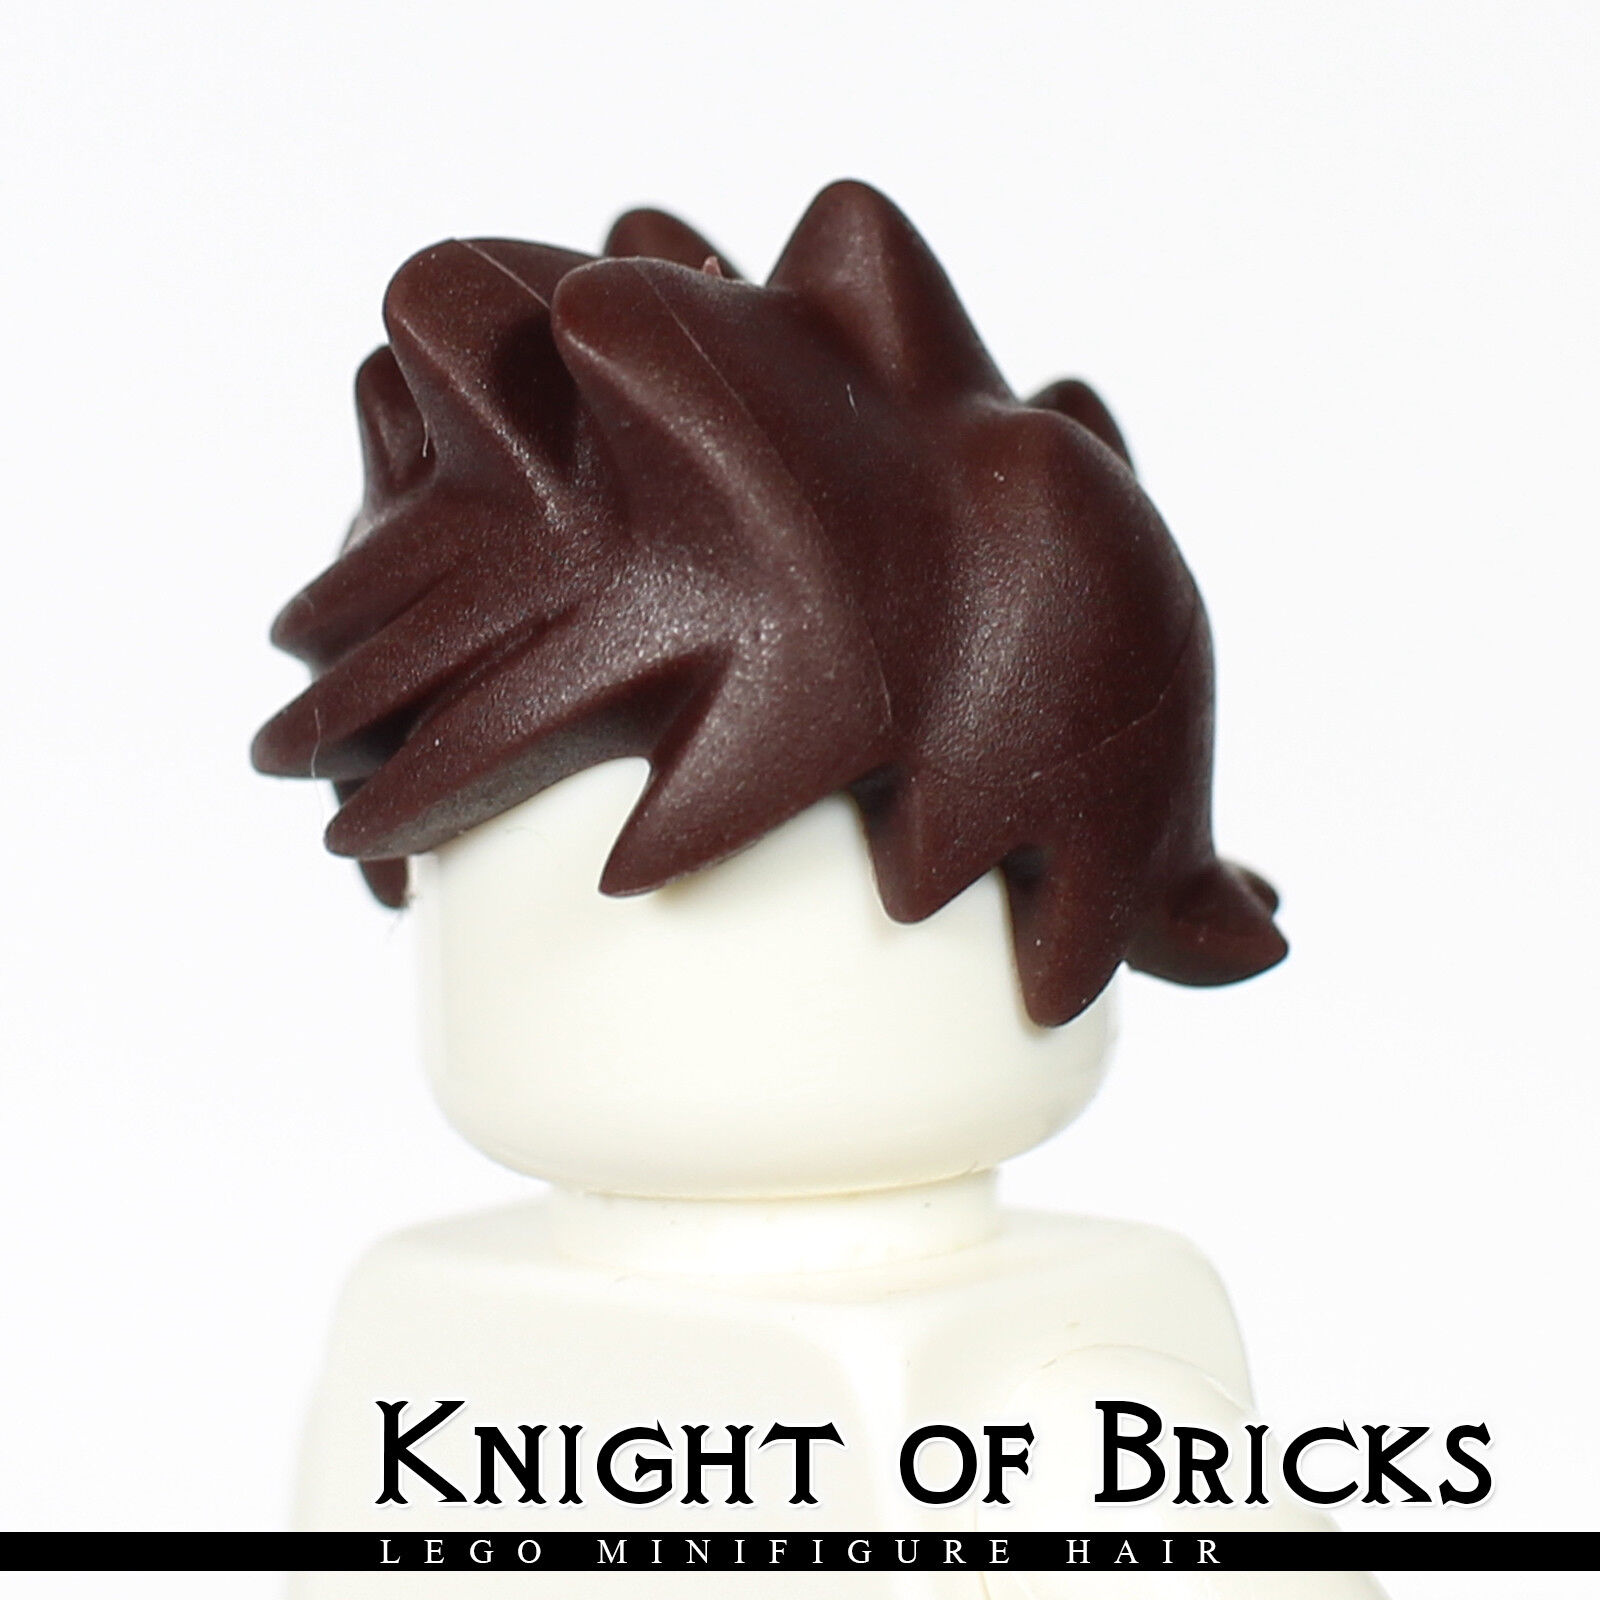 LEGO Minifigure Hair DARK BROWN 15705 Male Spiked and Tousled